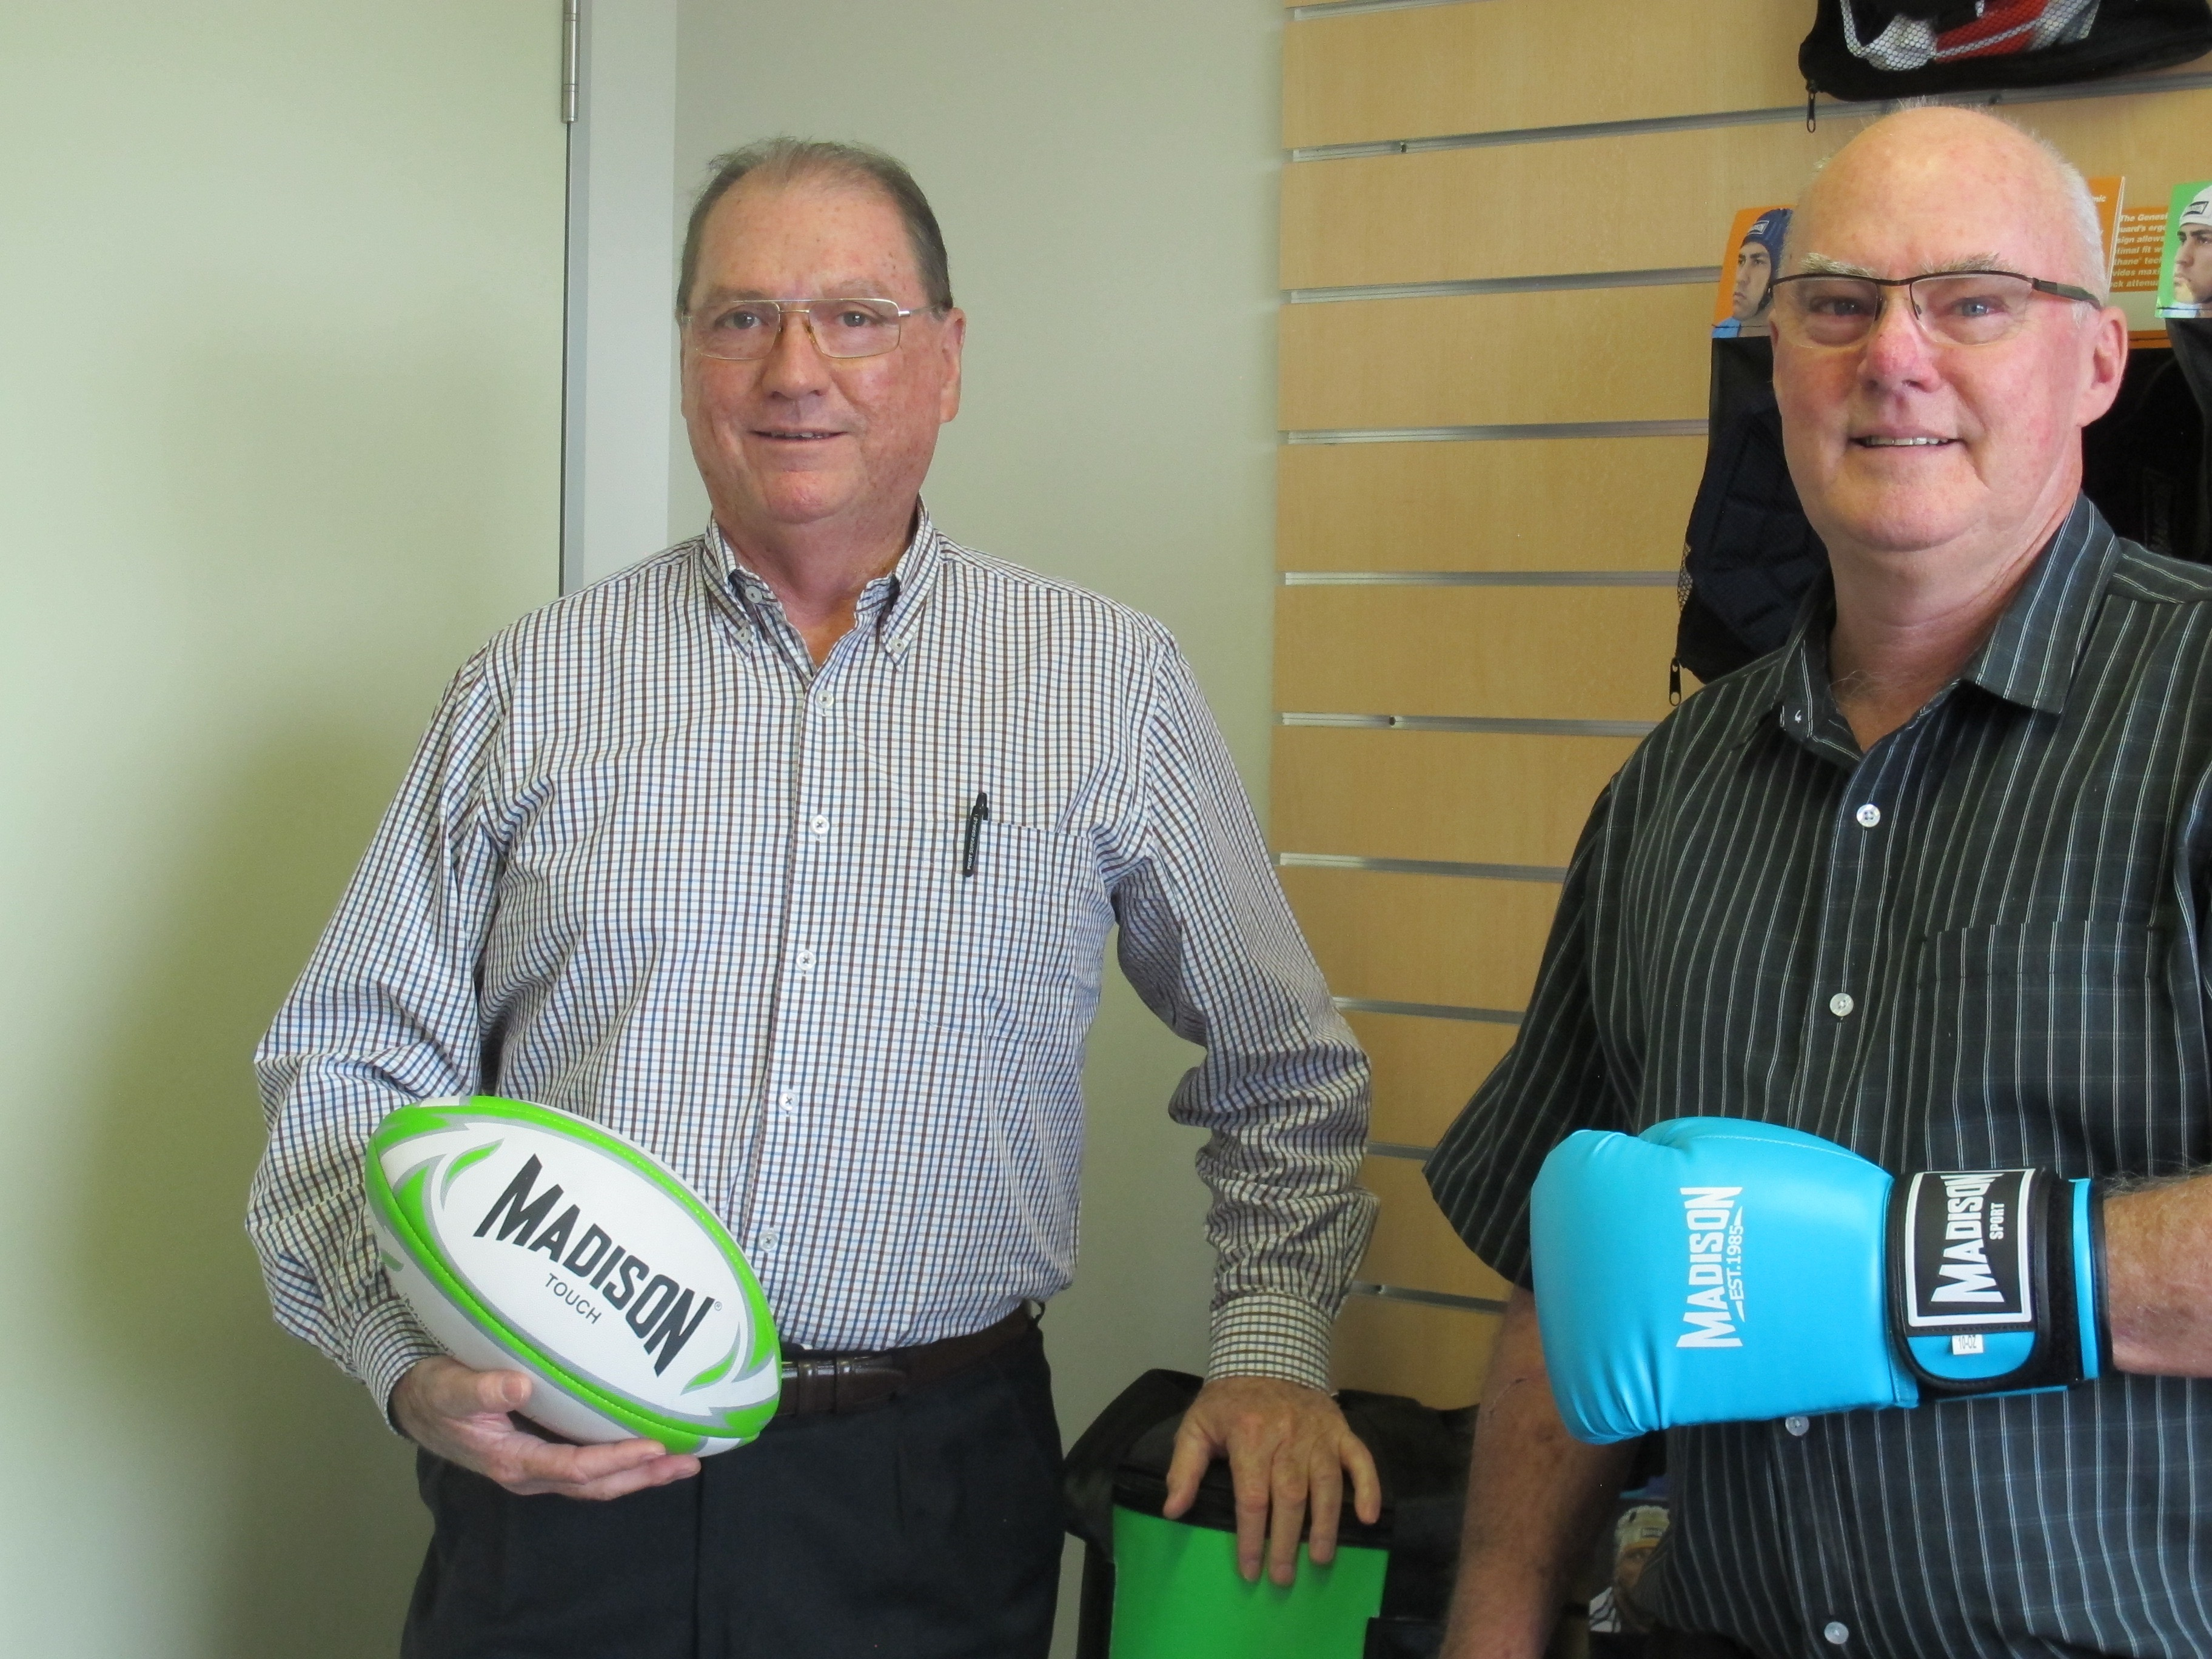 New faces, new plans for Madison Sport. by Madison Sport Pty Ltd in Banyo QLD